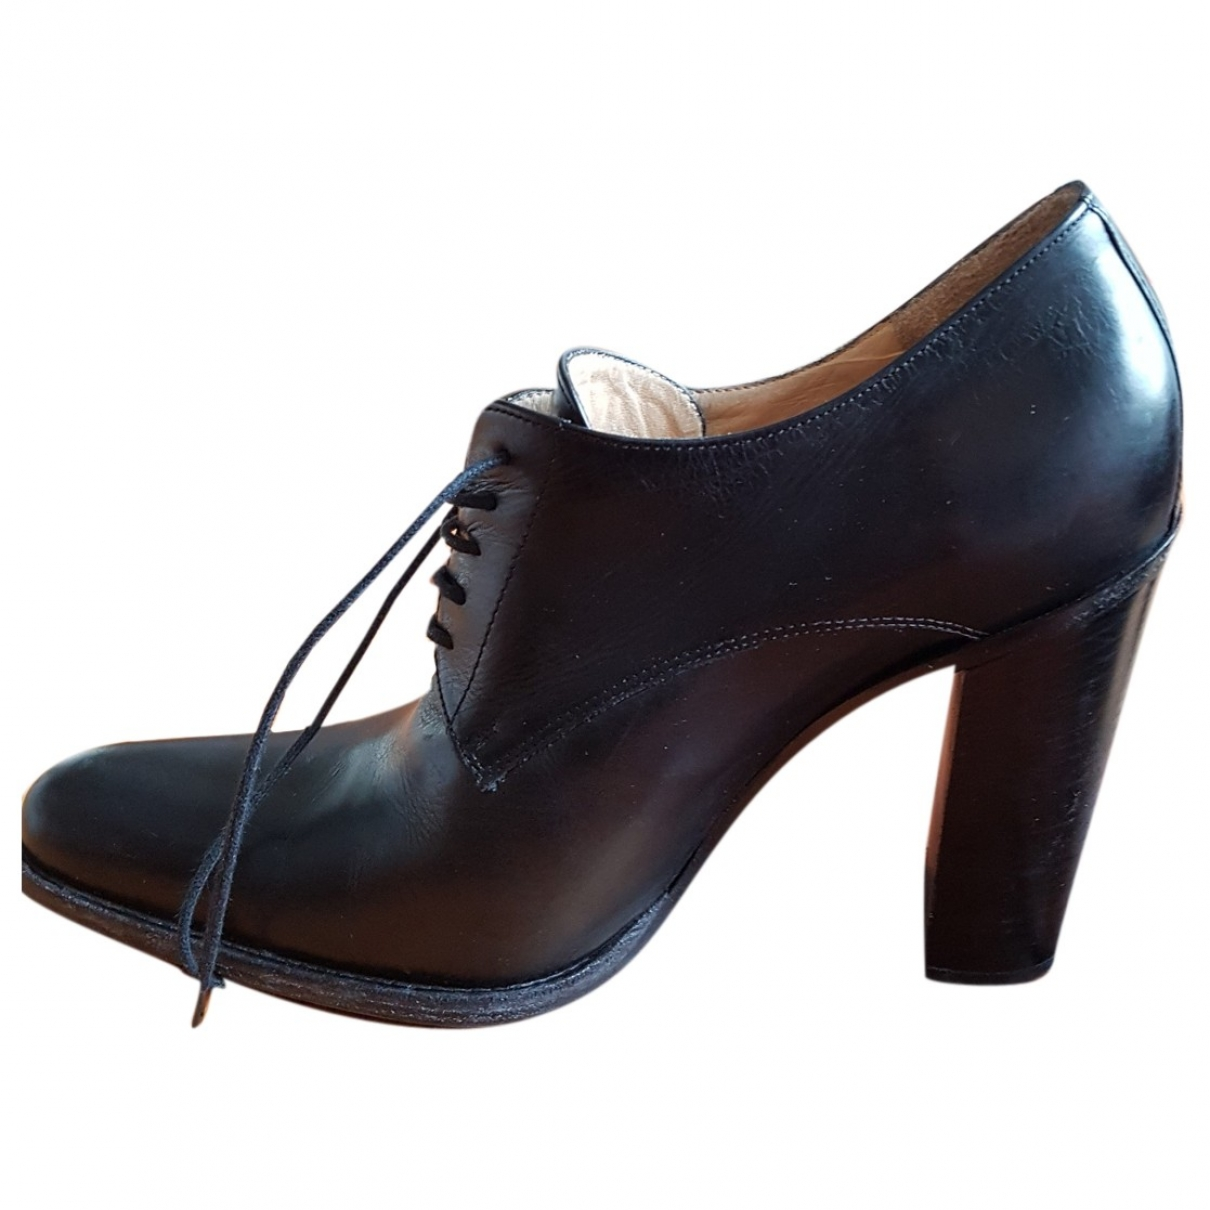 Free Lance Queenie Black Leather Ankle boots for Women 40 EU